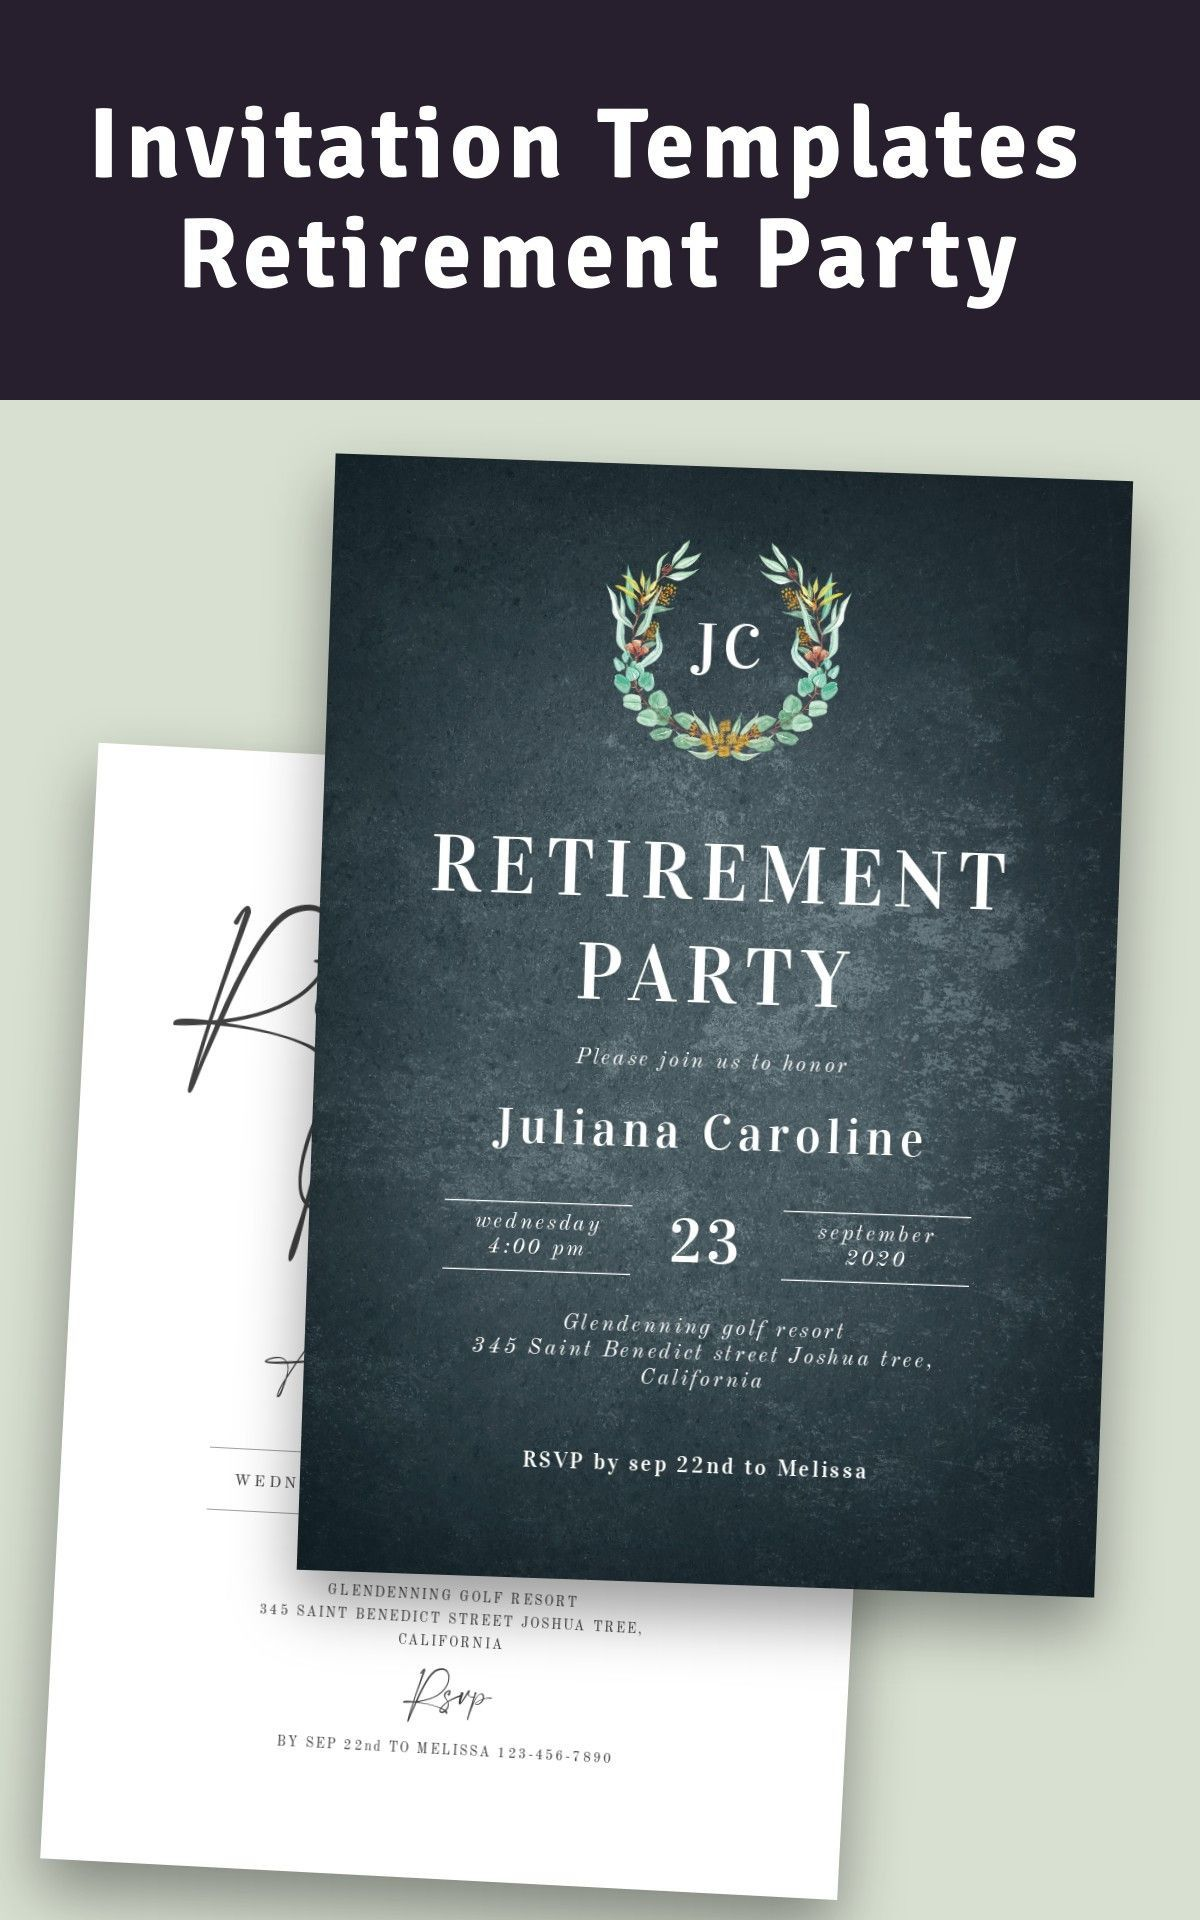 007 Sensational Retirement Party Invitation Template Free Picture  M WordFull